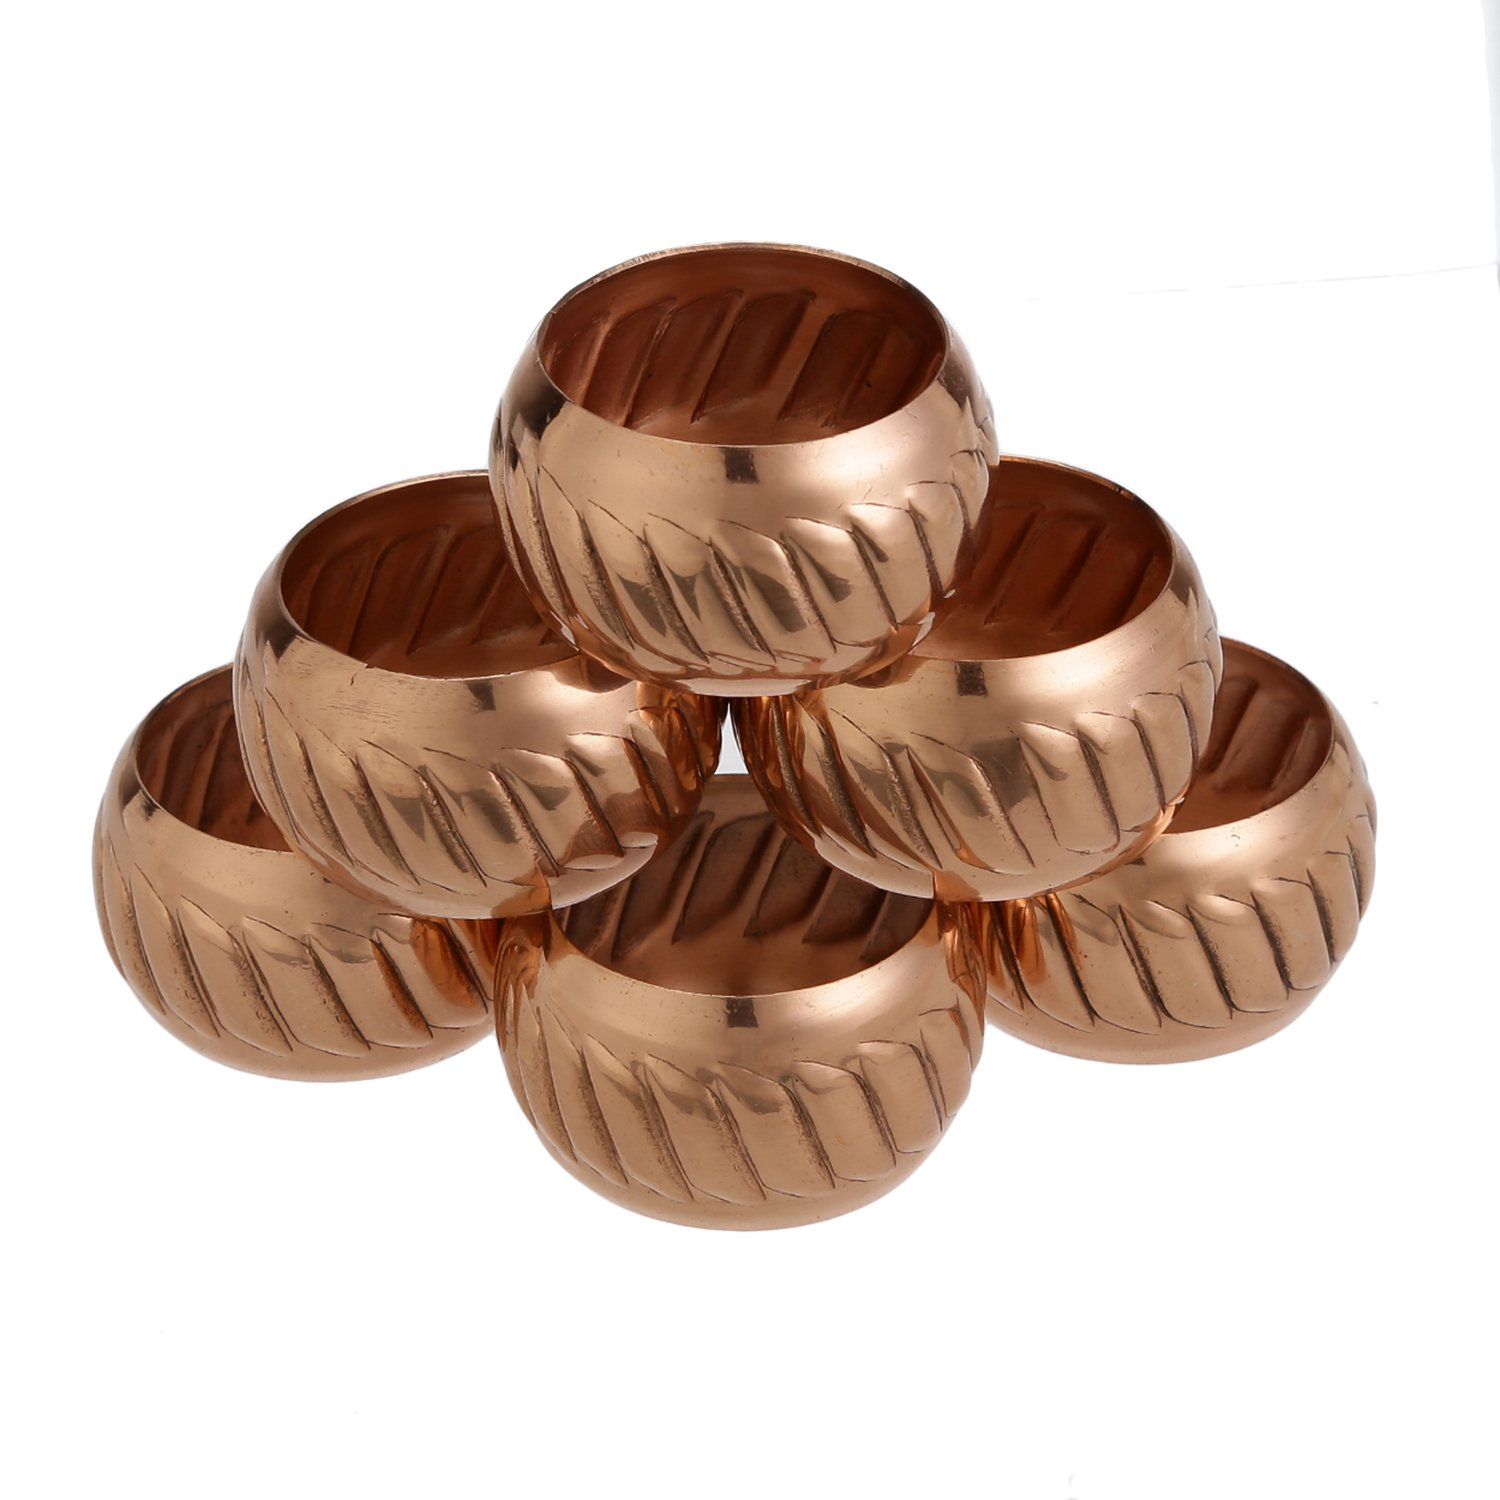 ShalinIndia Copper Napkin Rings Holder Weddings,Dinners, Parties Everyday Use, Set of 6,Light Weight 40 Grams,Diameter-1.5 Inch Shalincraft MN-copper-NR-101-S6